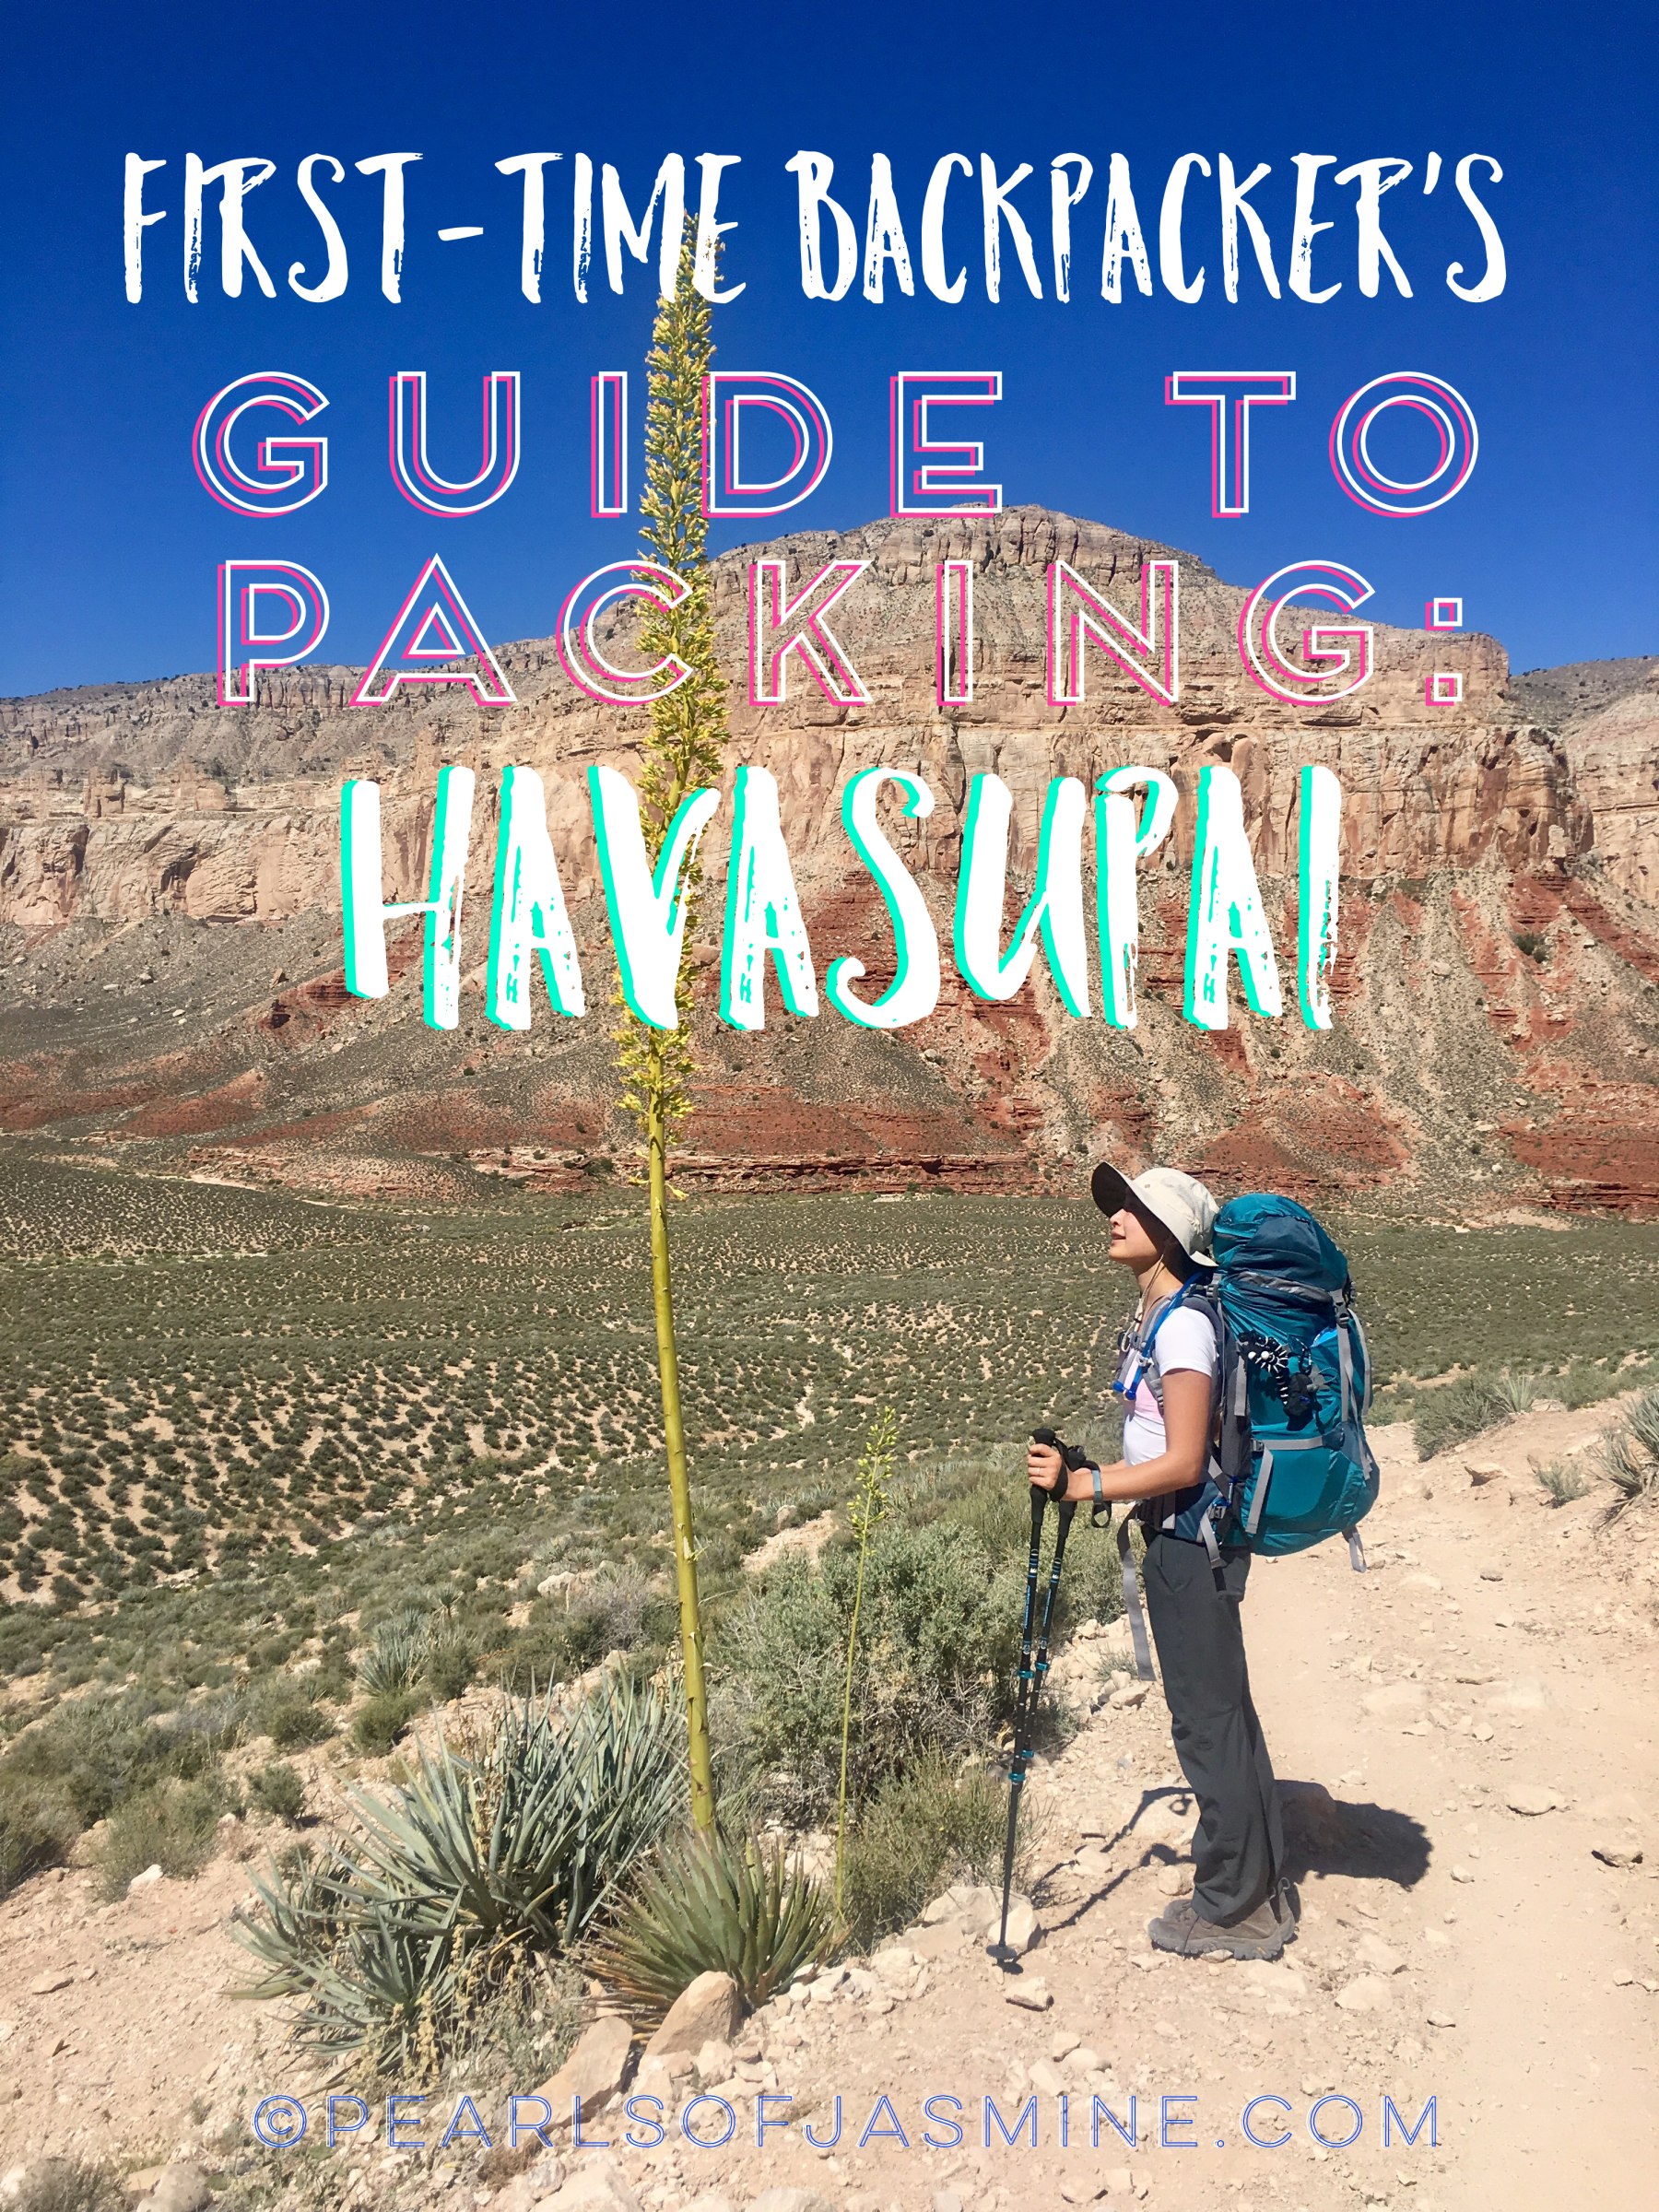 128f8d17d69a A First-Time Backpacker s Guide to Packing for Havasupai